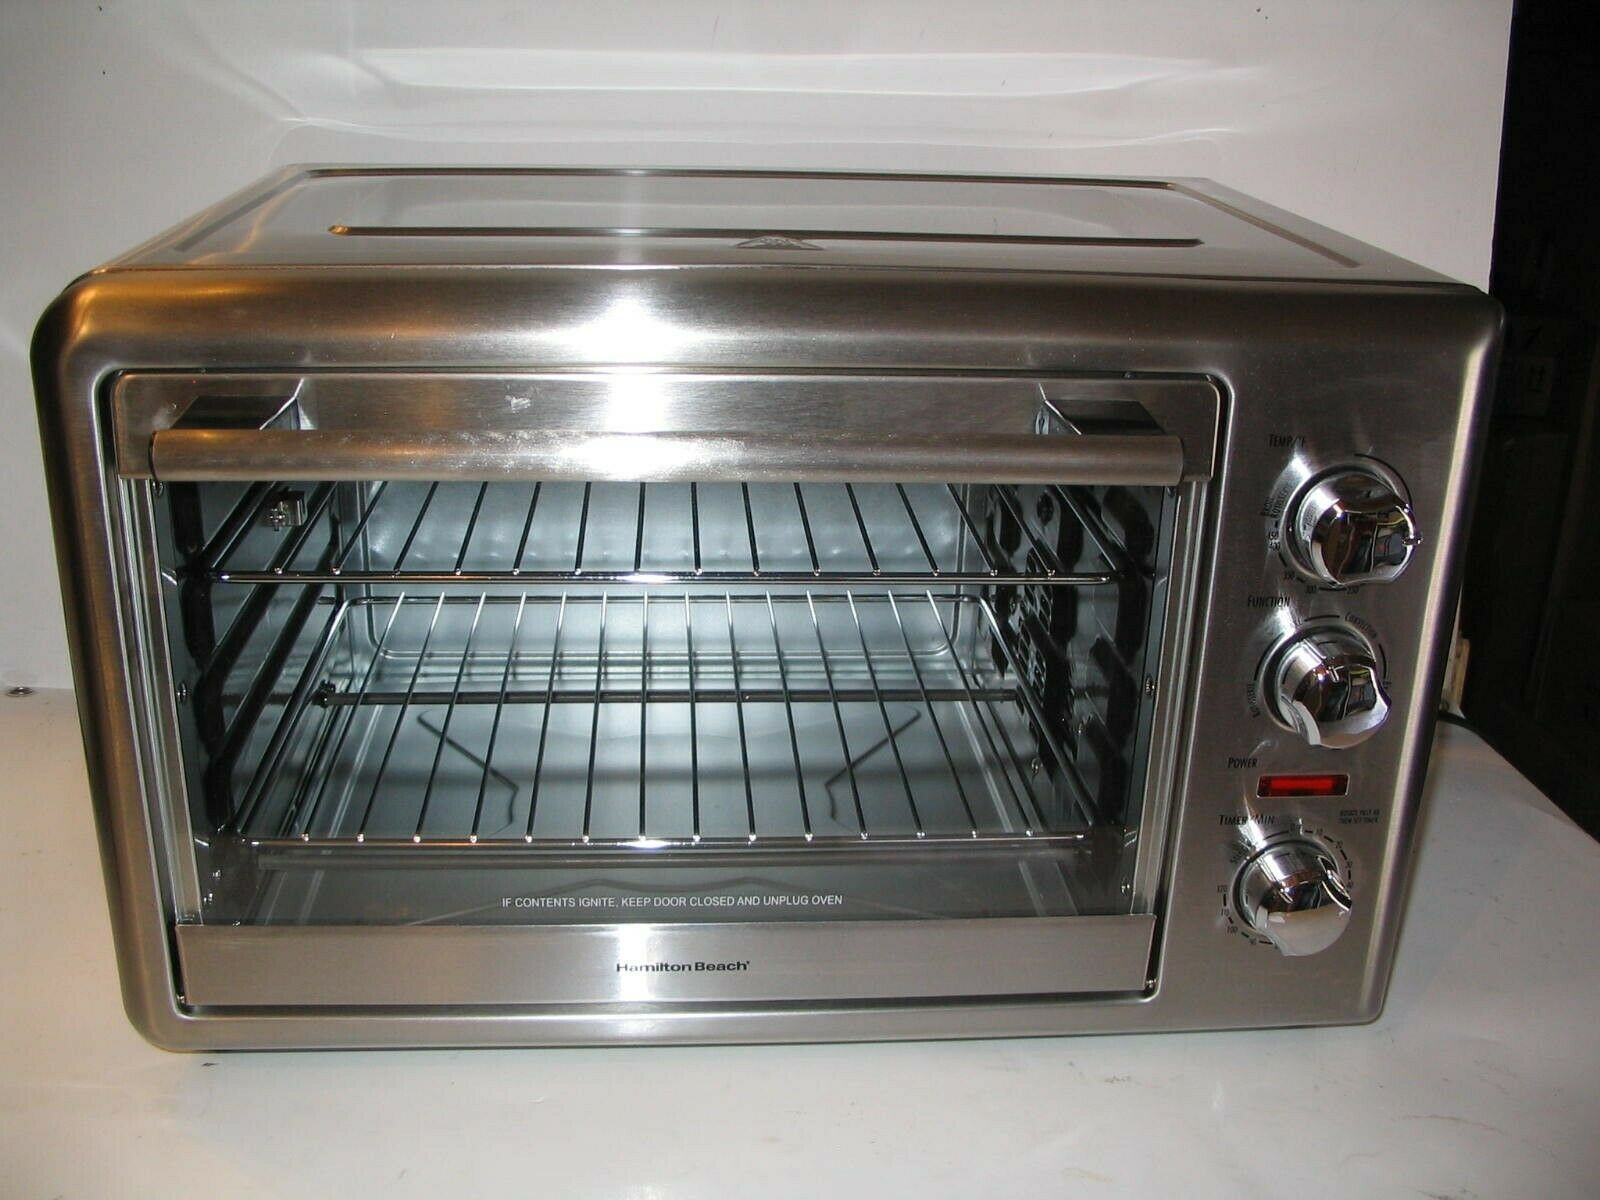 New Hamilton Beach 31103da Countertop Convection Rotisserie